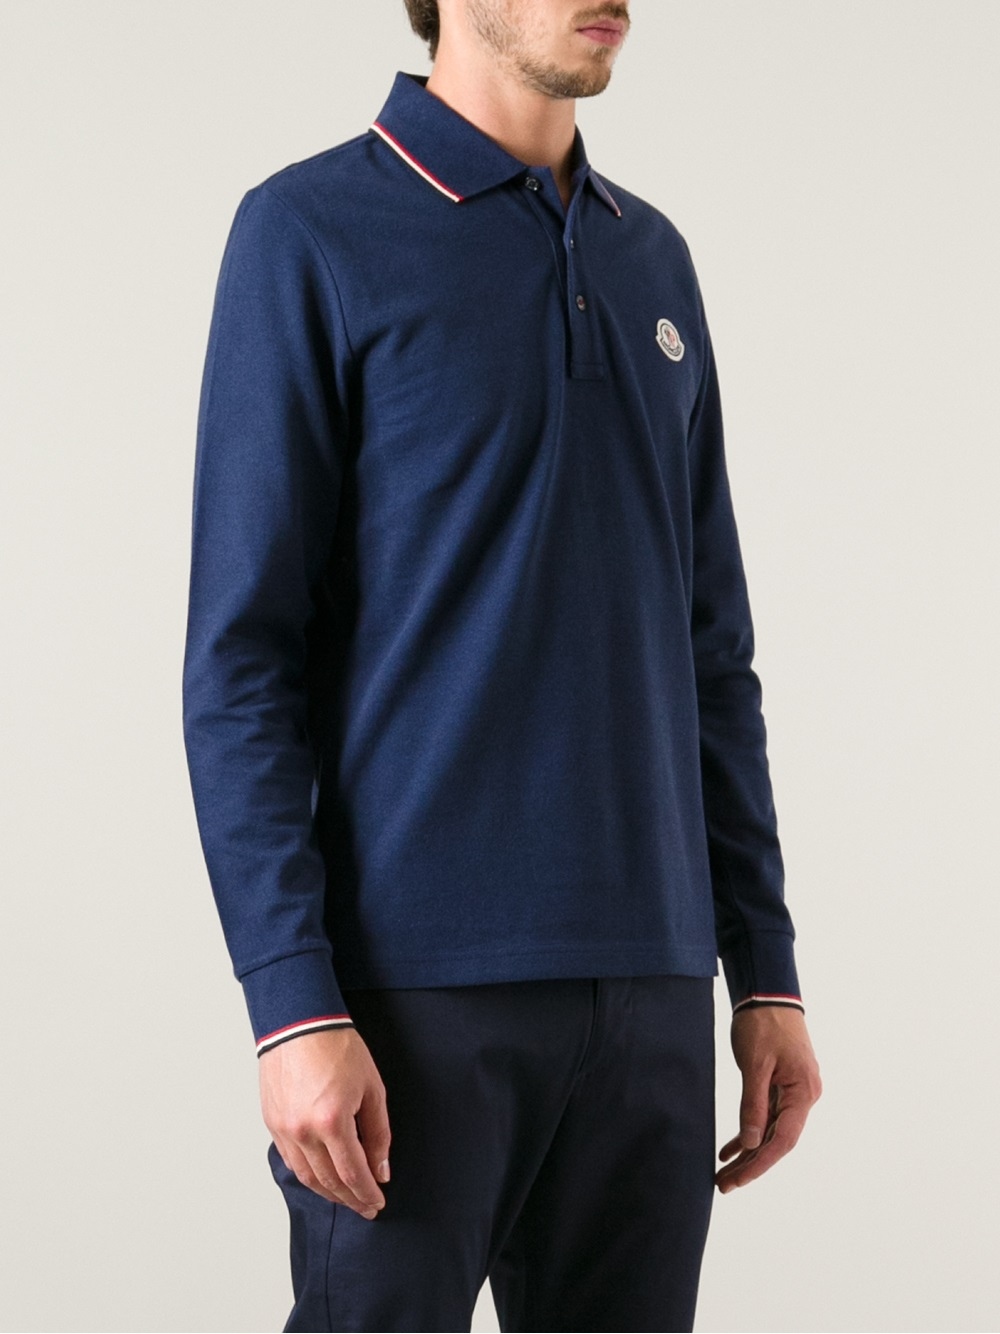 88ac2d18a Moncler Long Sleeve Polo Shirt in Blue for Men - Lyst